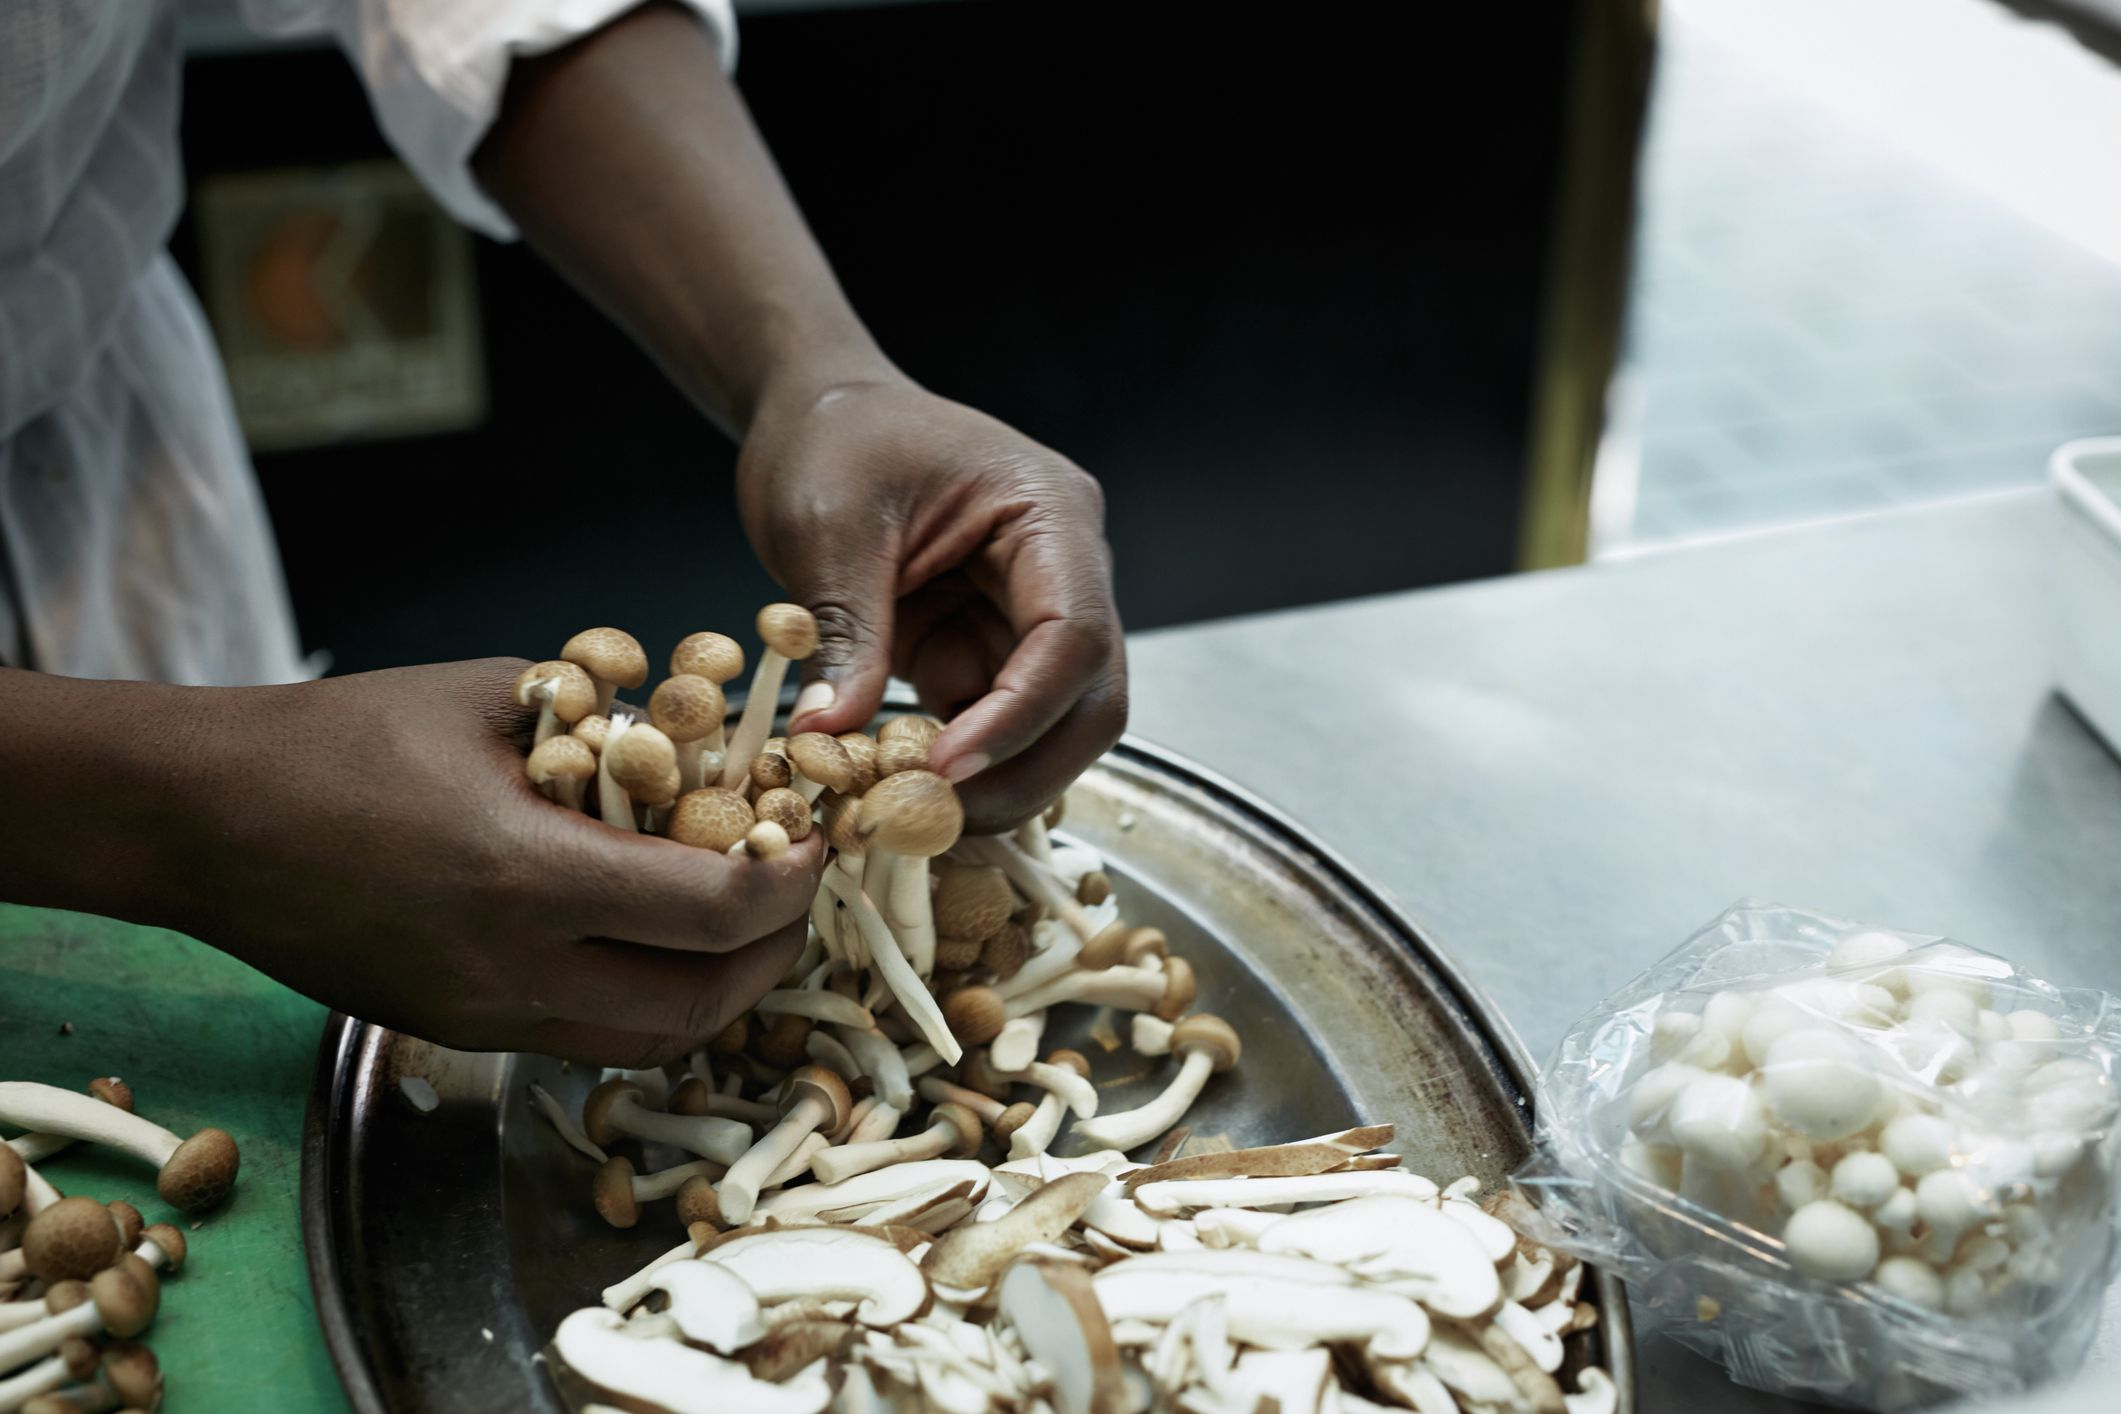 High Mushroom Consumption Associated With Lower Cancer Risk